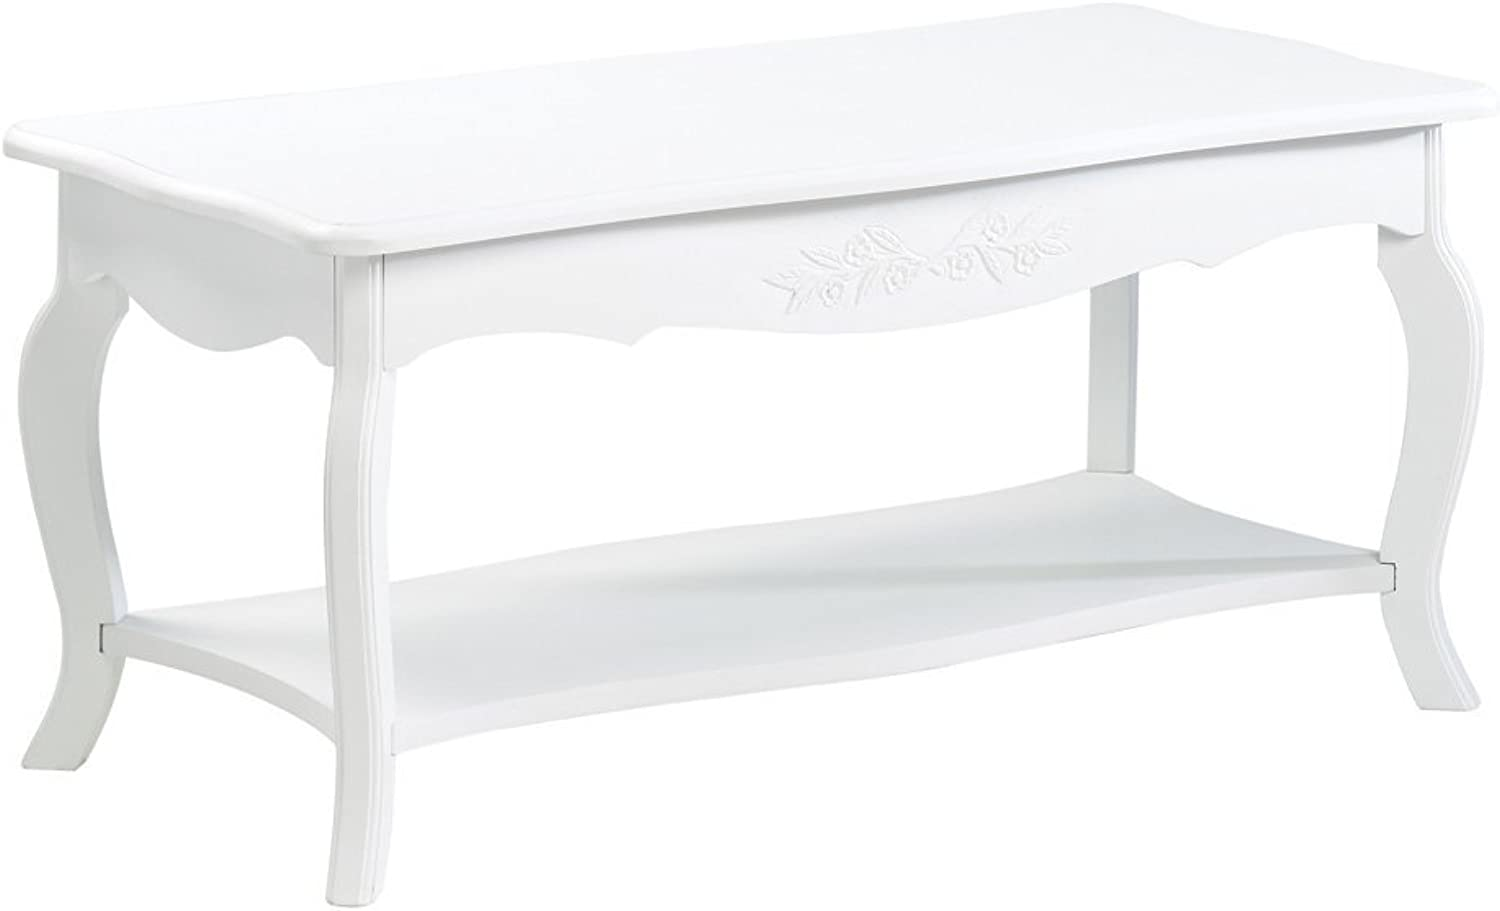 Modern Coffee Table White, Contemporary Coffee Tables Wood - MDF and Pine